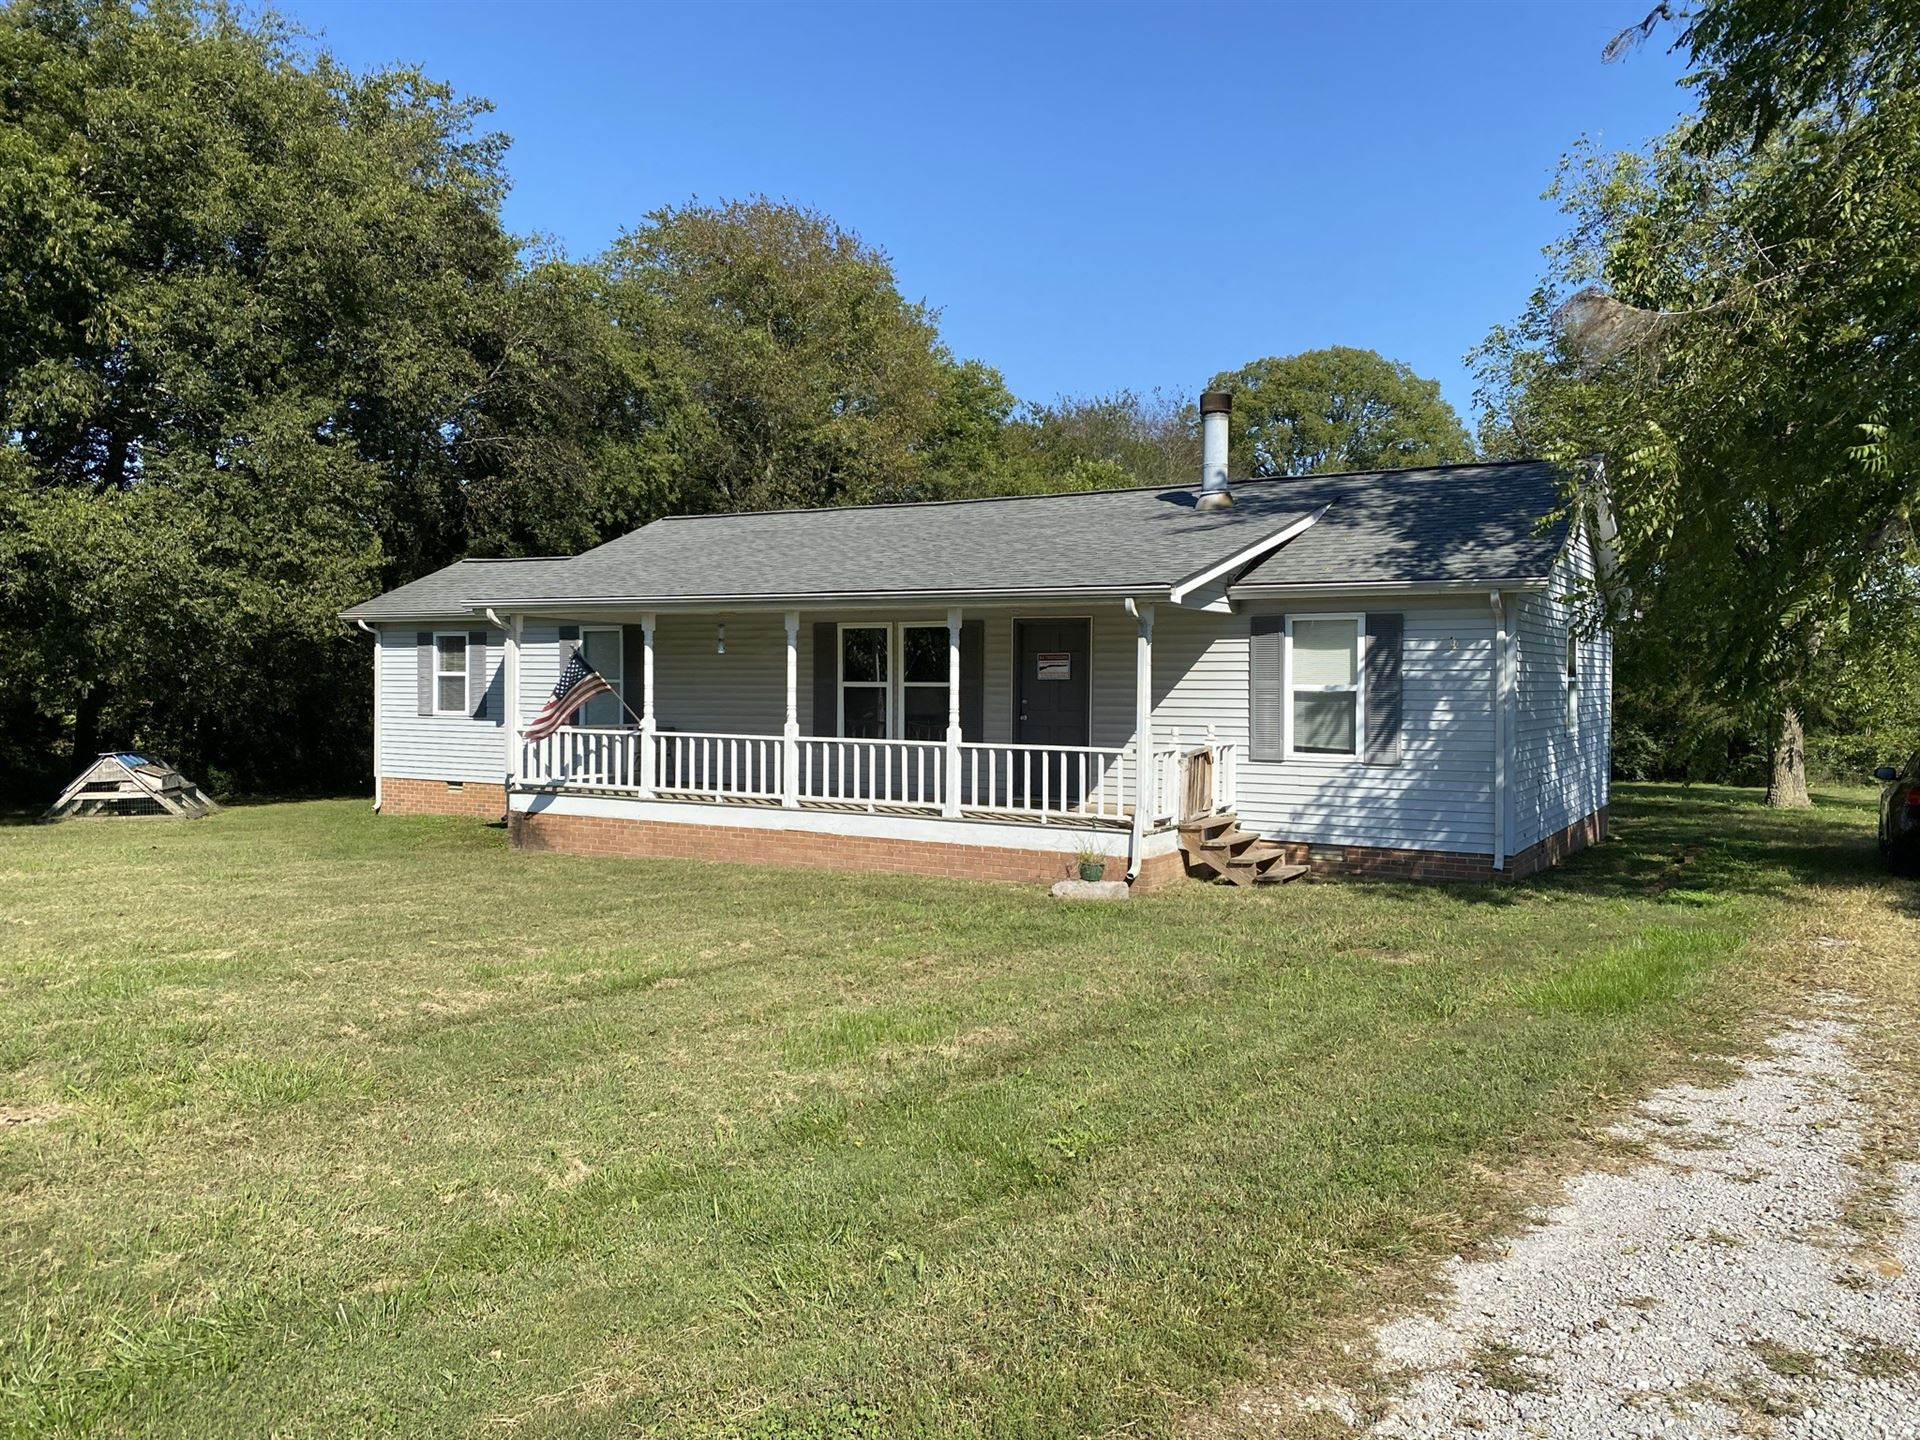 1326 N Main St Tract 7, Eagleville, TN 37060 - MLS#: 2301030